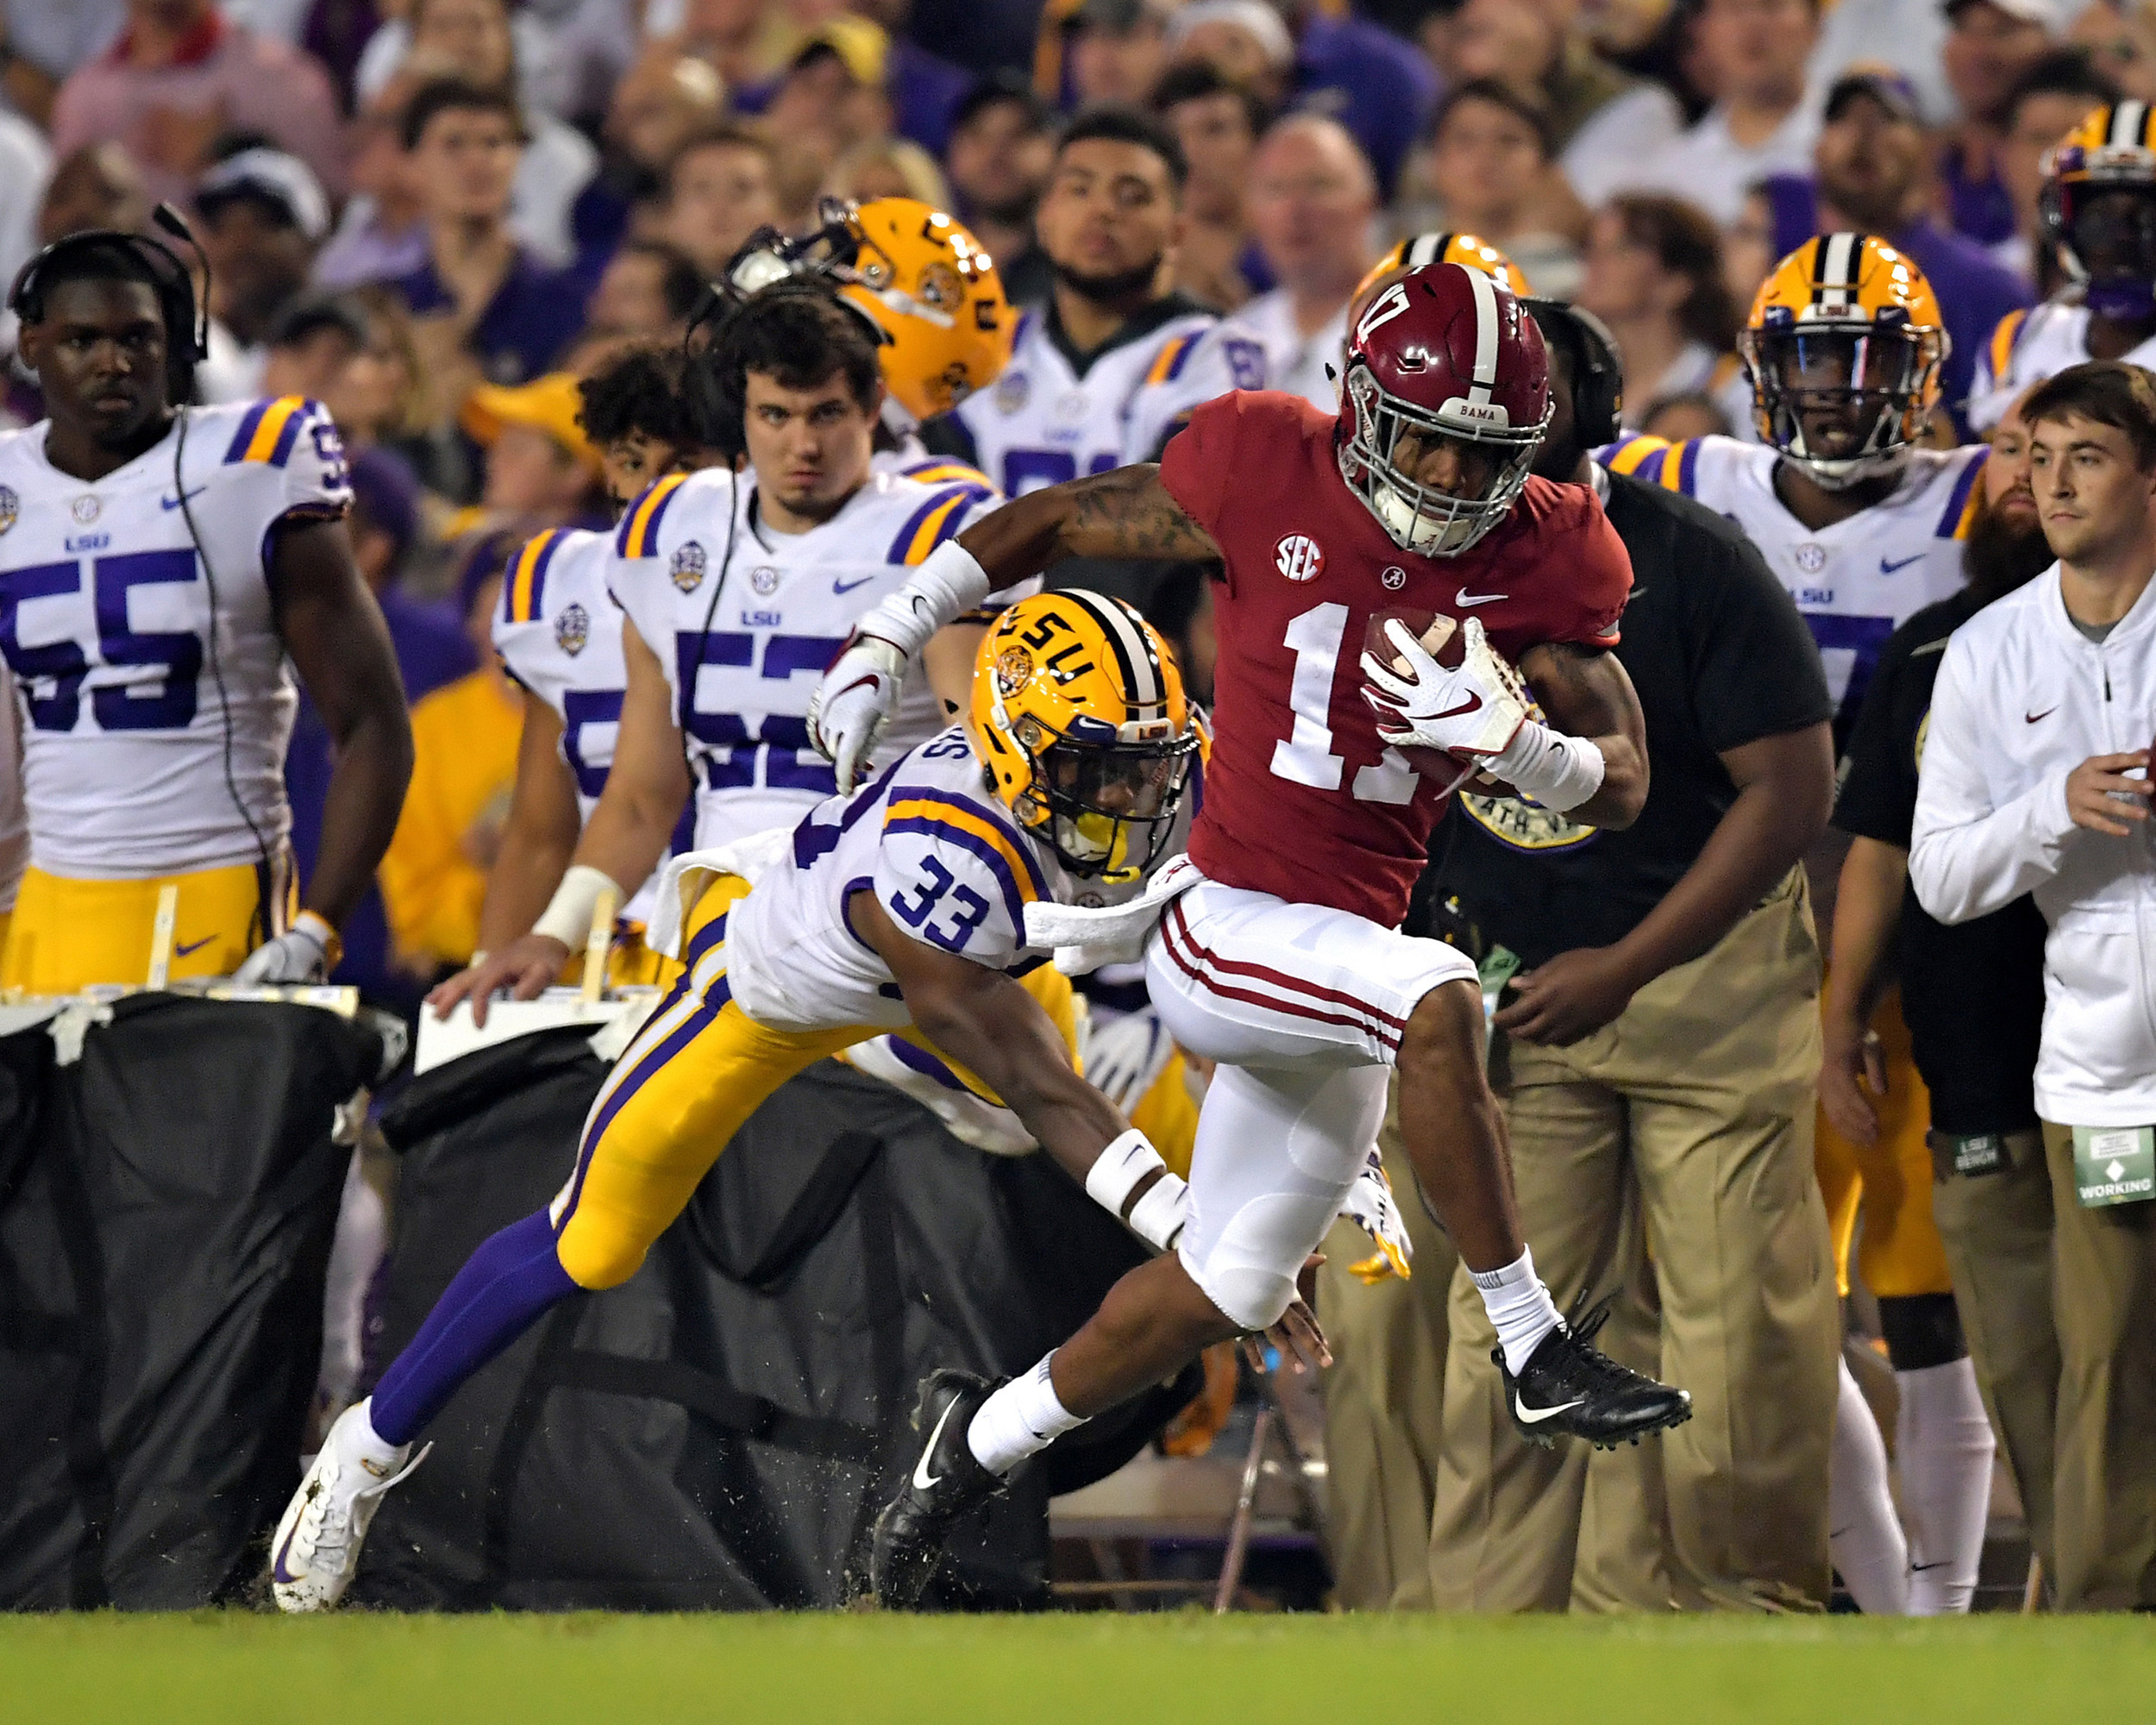 Alabama Crimson Tide wide receiver Jaylen Waddle (17) takes off down the sideline in the first half of an NCAA football game against the LSU Tigers Saturday, November 3, 2018, at Tiger Stadium in Baton Rouge, La. Alabama wins 29-0. (Photo by Lee Walls)